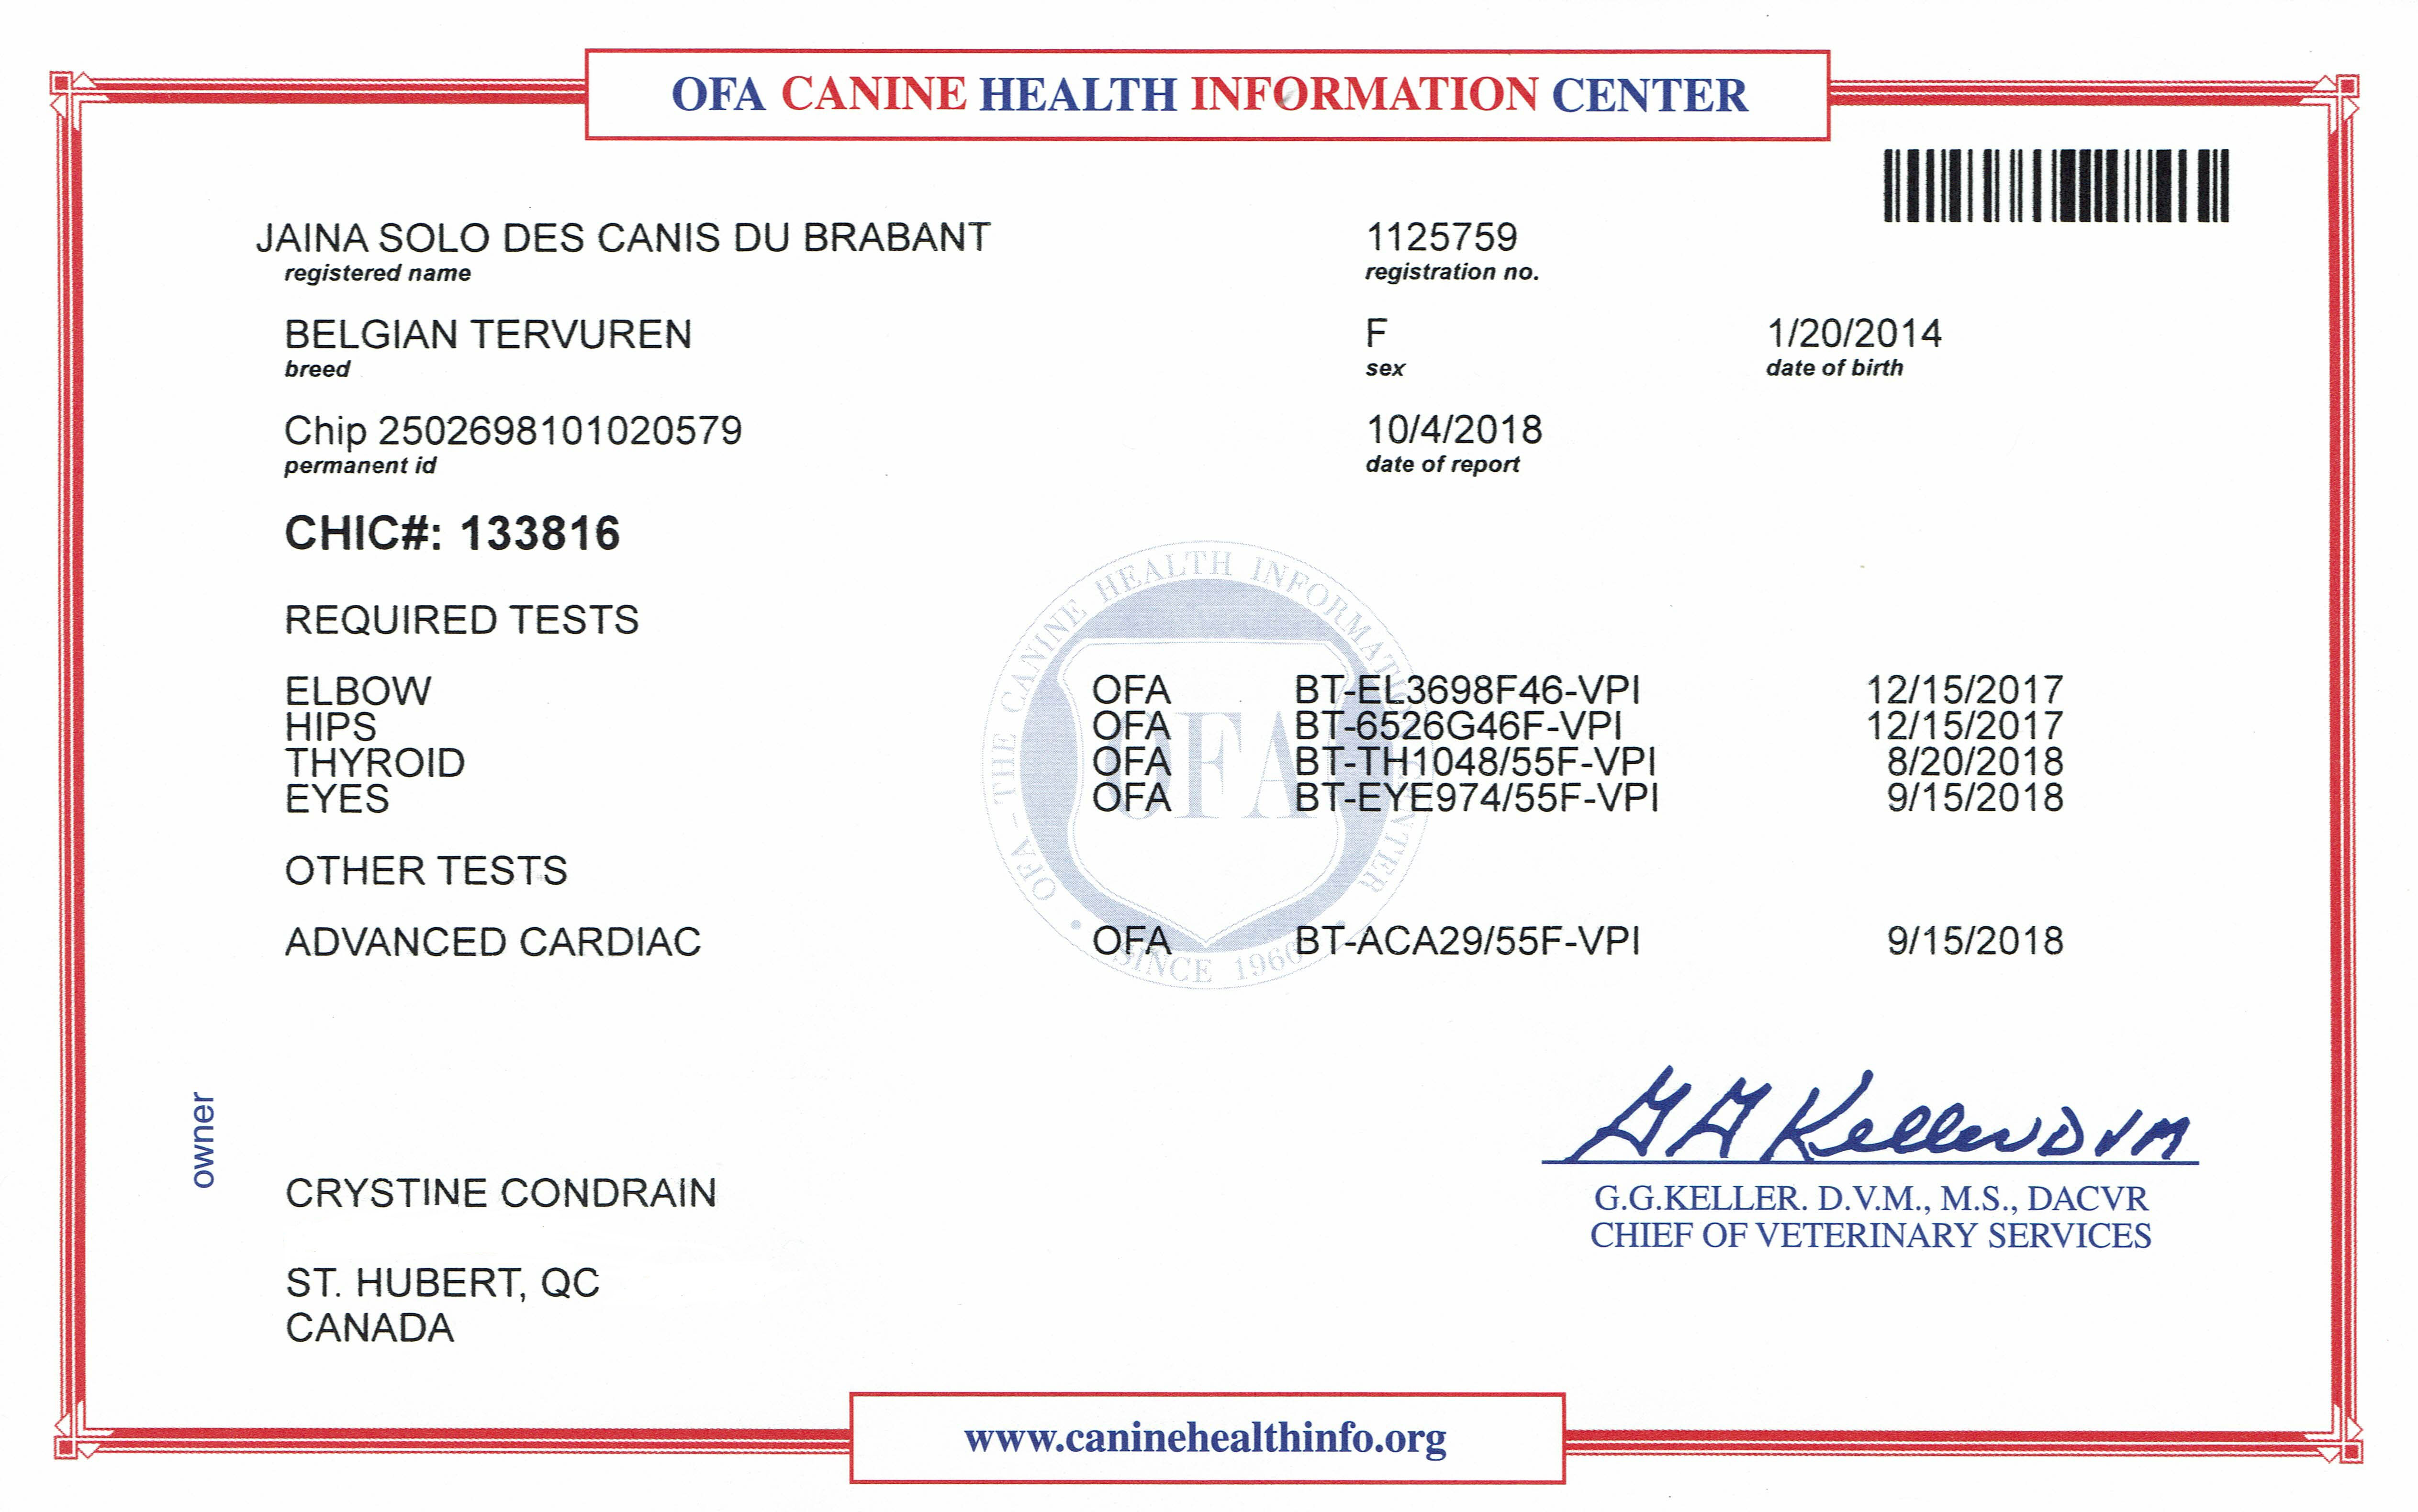 Certificat CHIC (Canine Health Information Center) #133816.